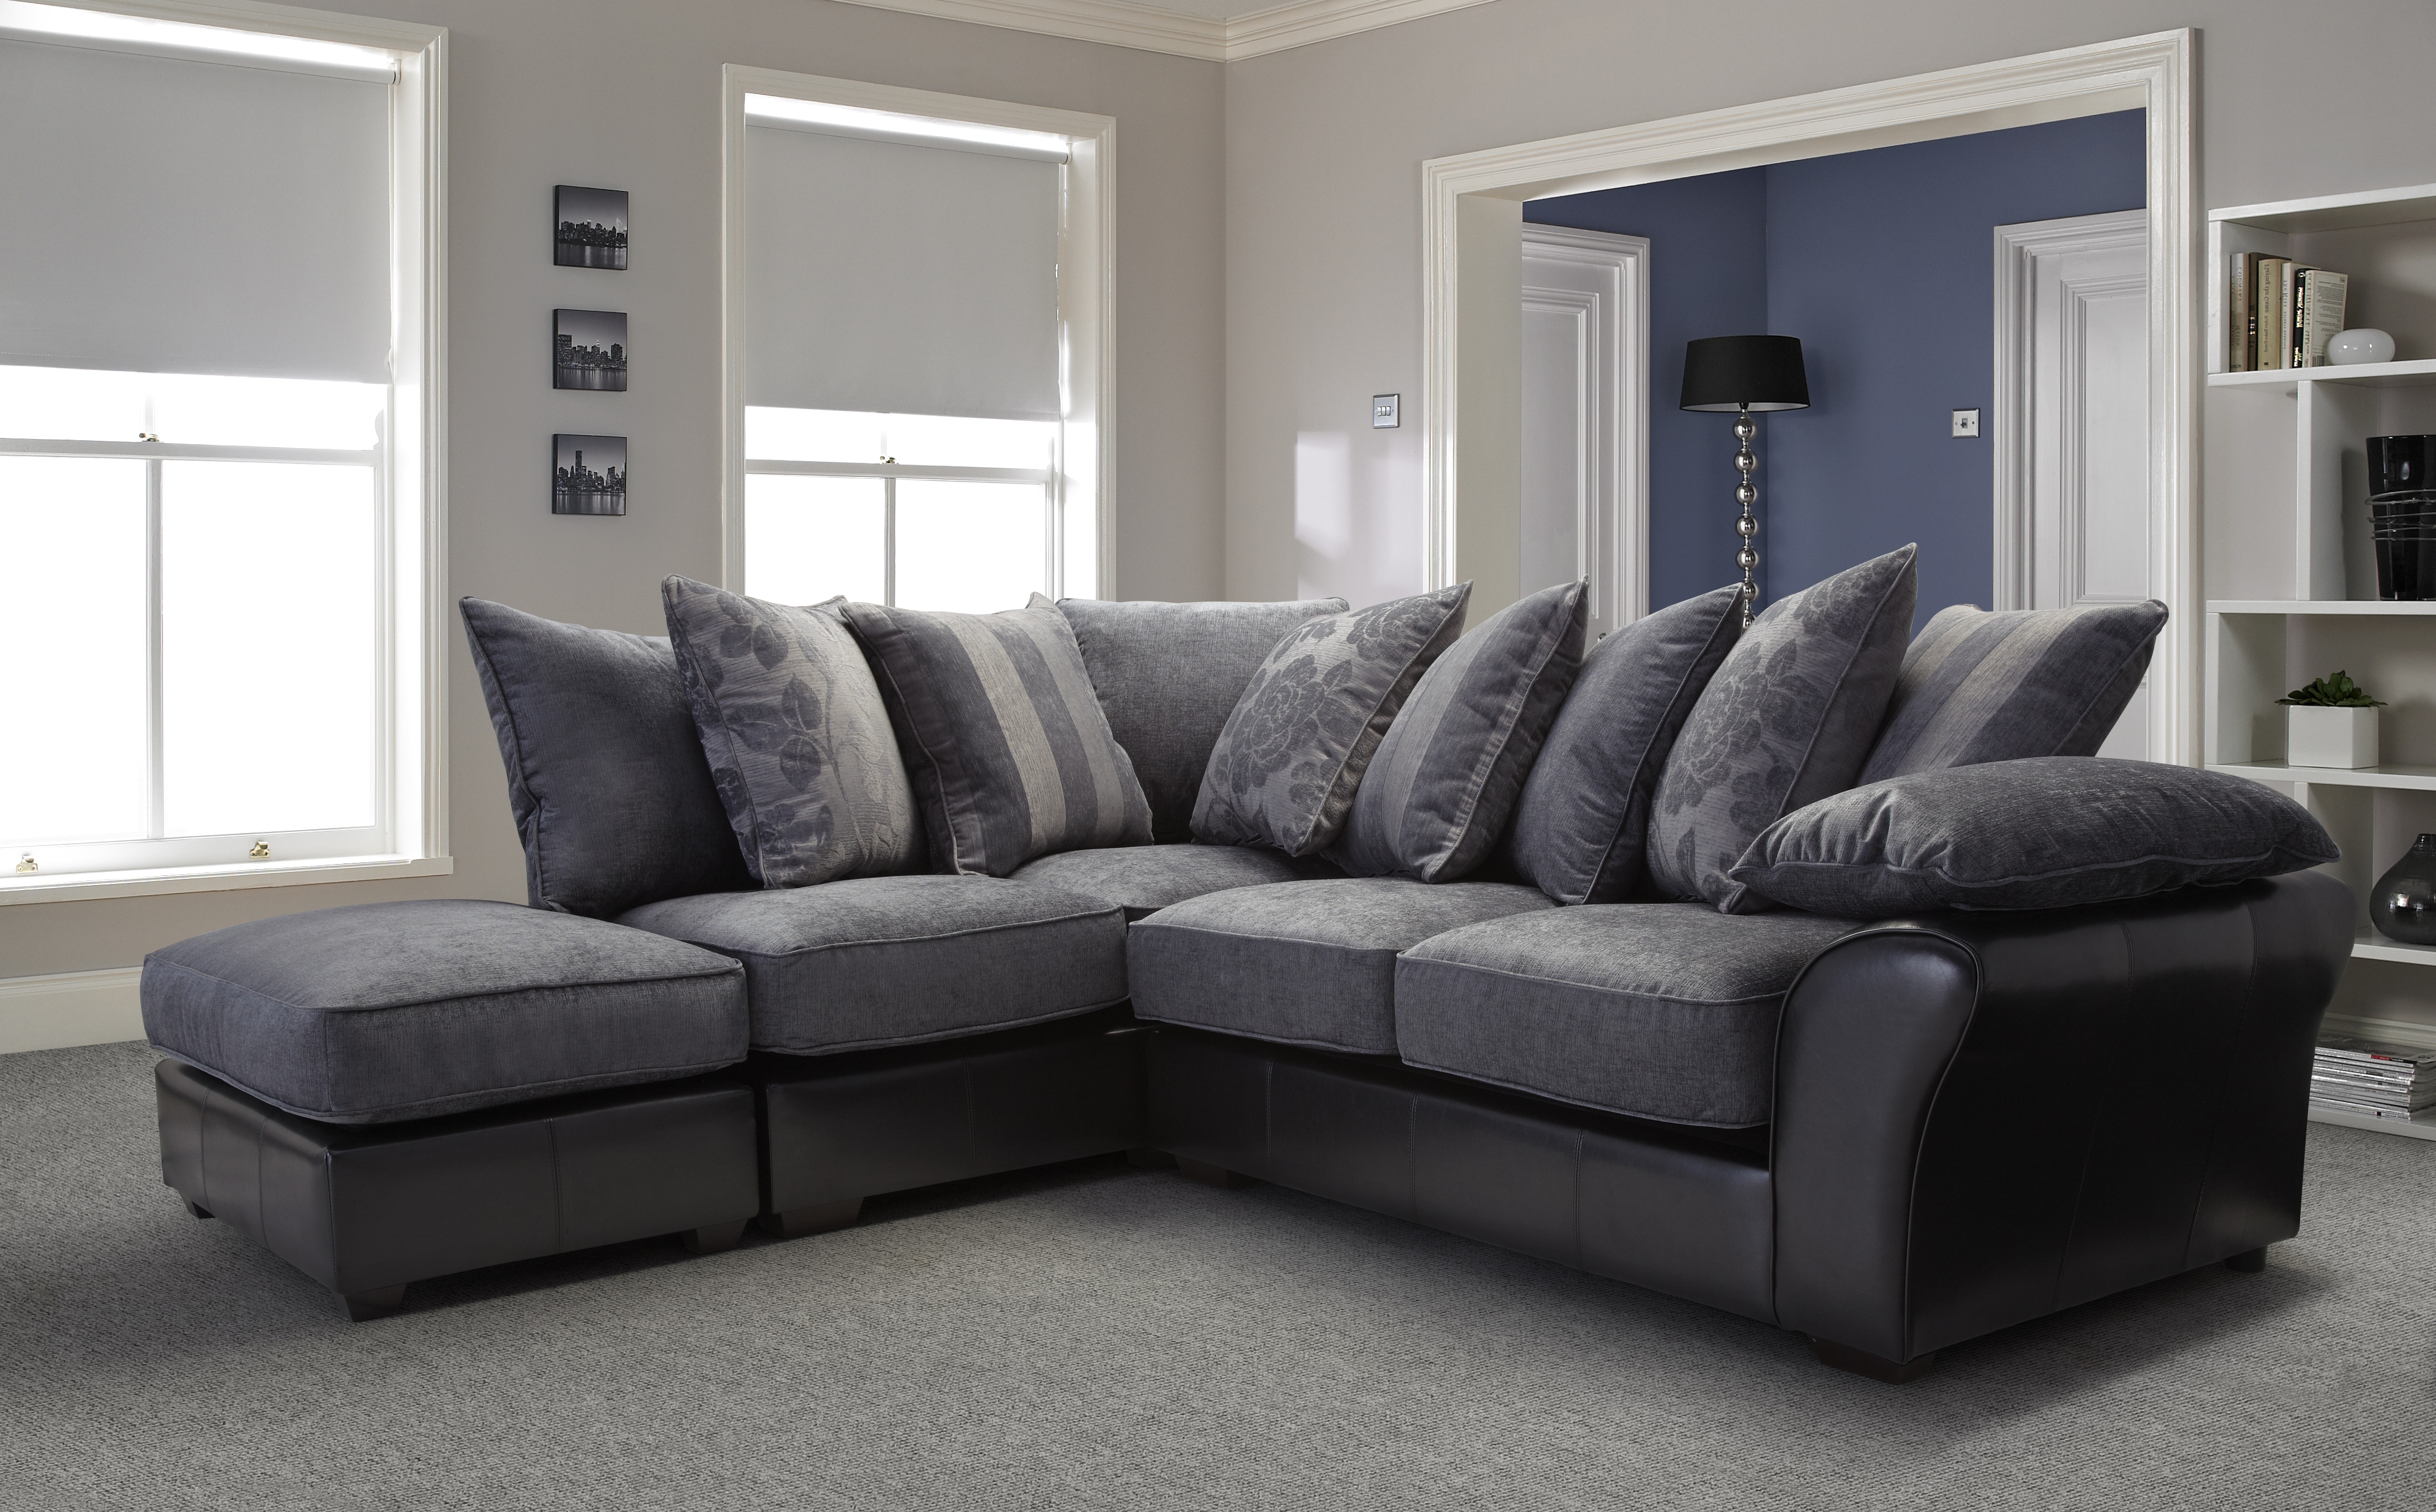 Furniture: Breathtaking Corner Sofas Decorating Ideas Leather With 2018 Leather Corner Sofas (View 5 of 20)